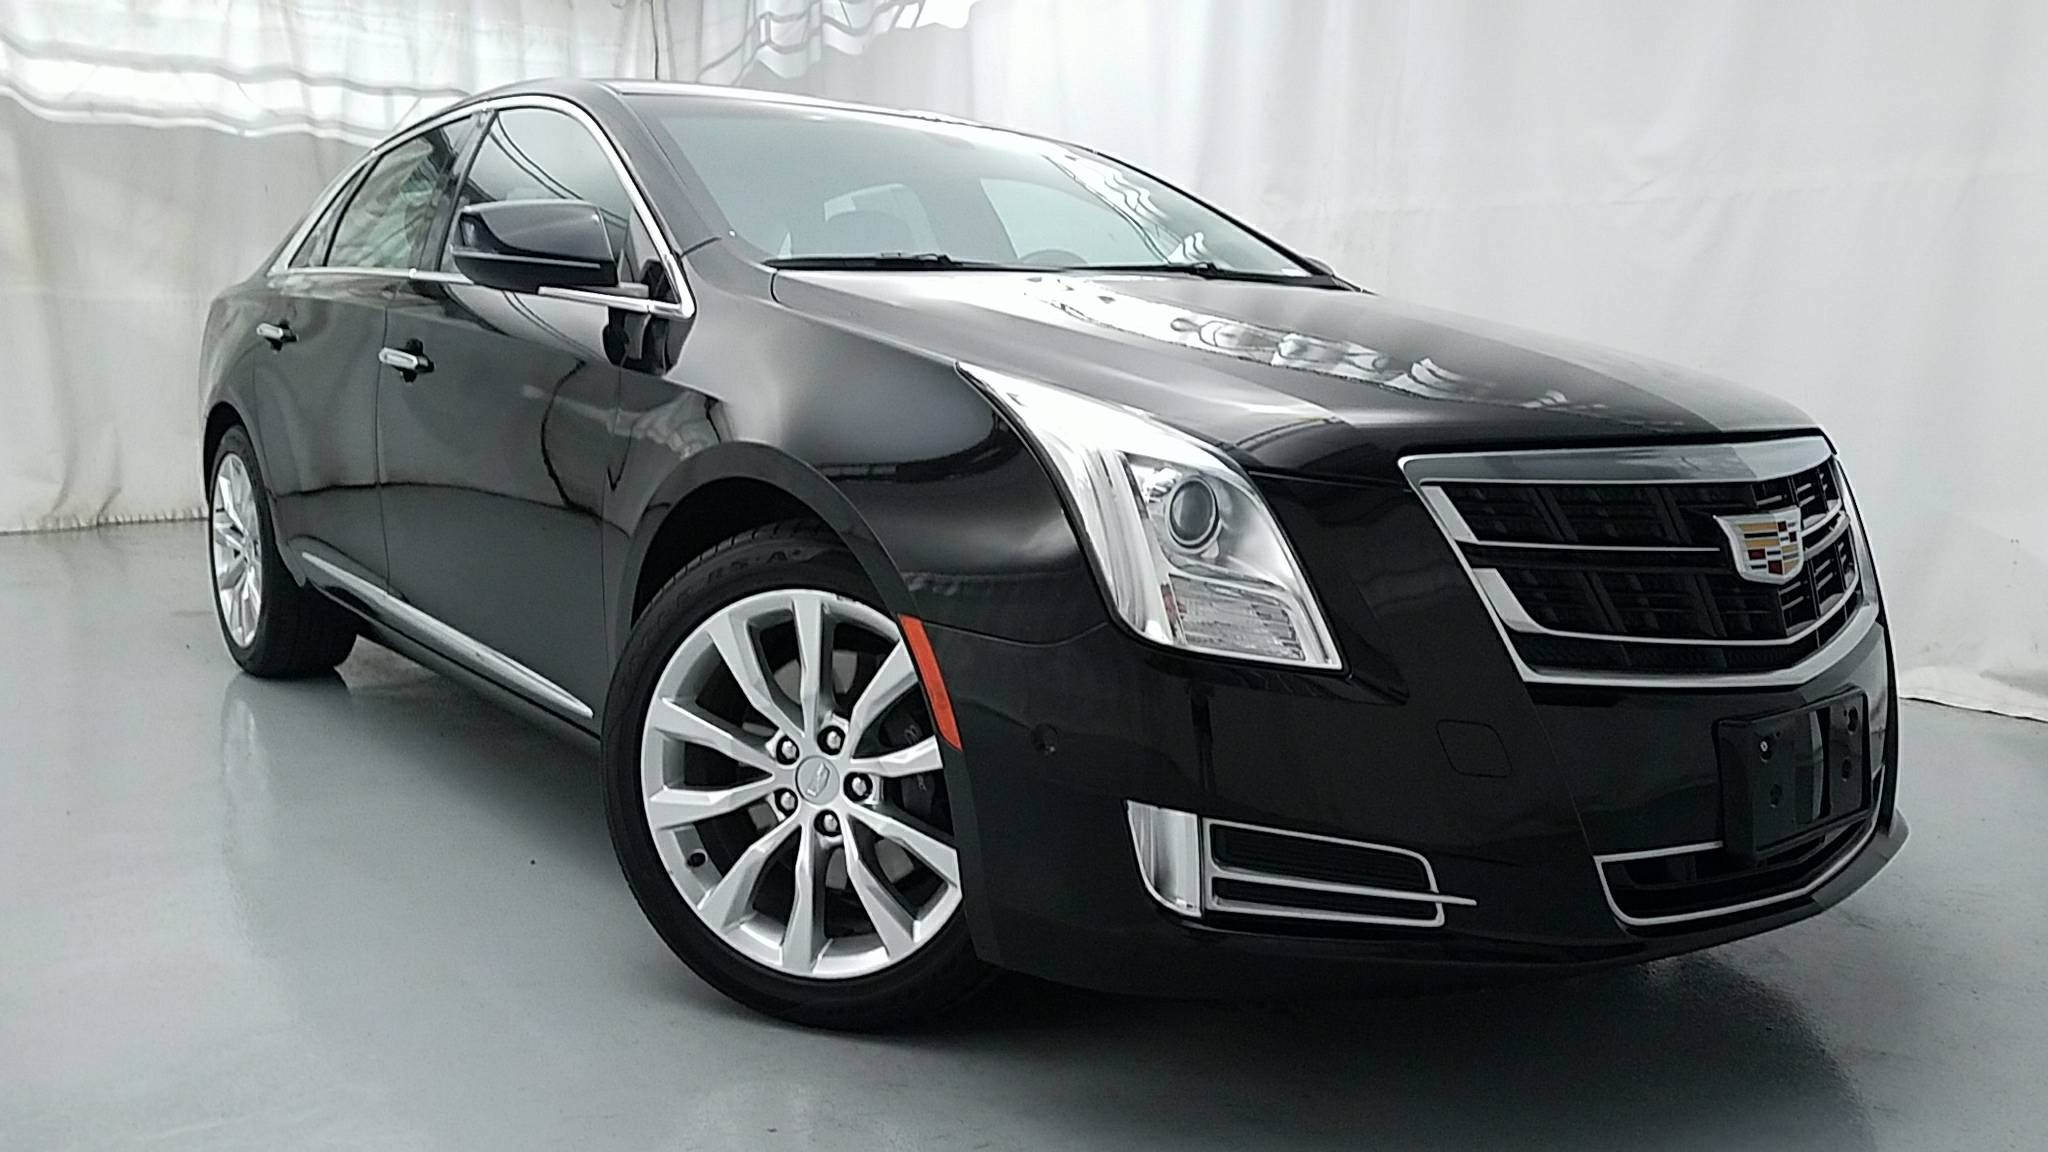 ALL 2017 Cadillac Vehicles for Sale in Hammond